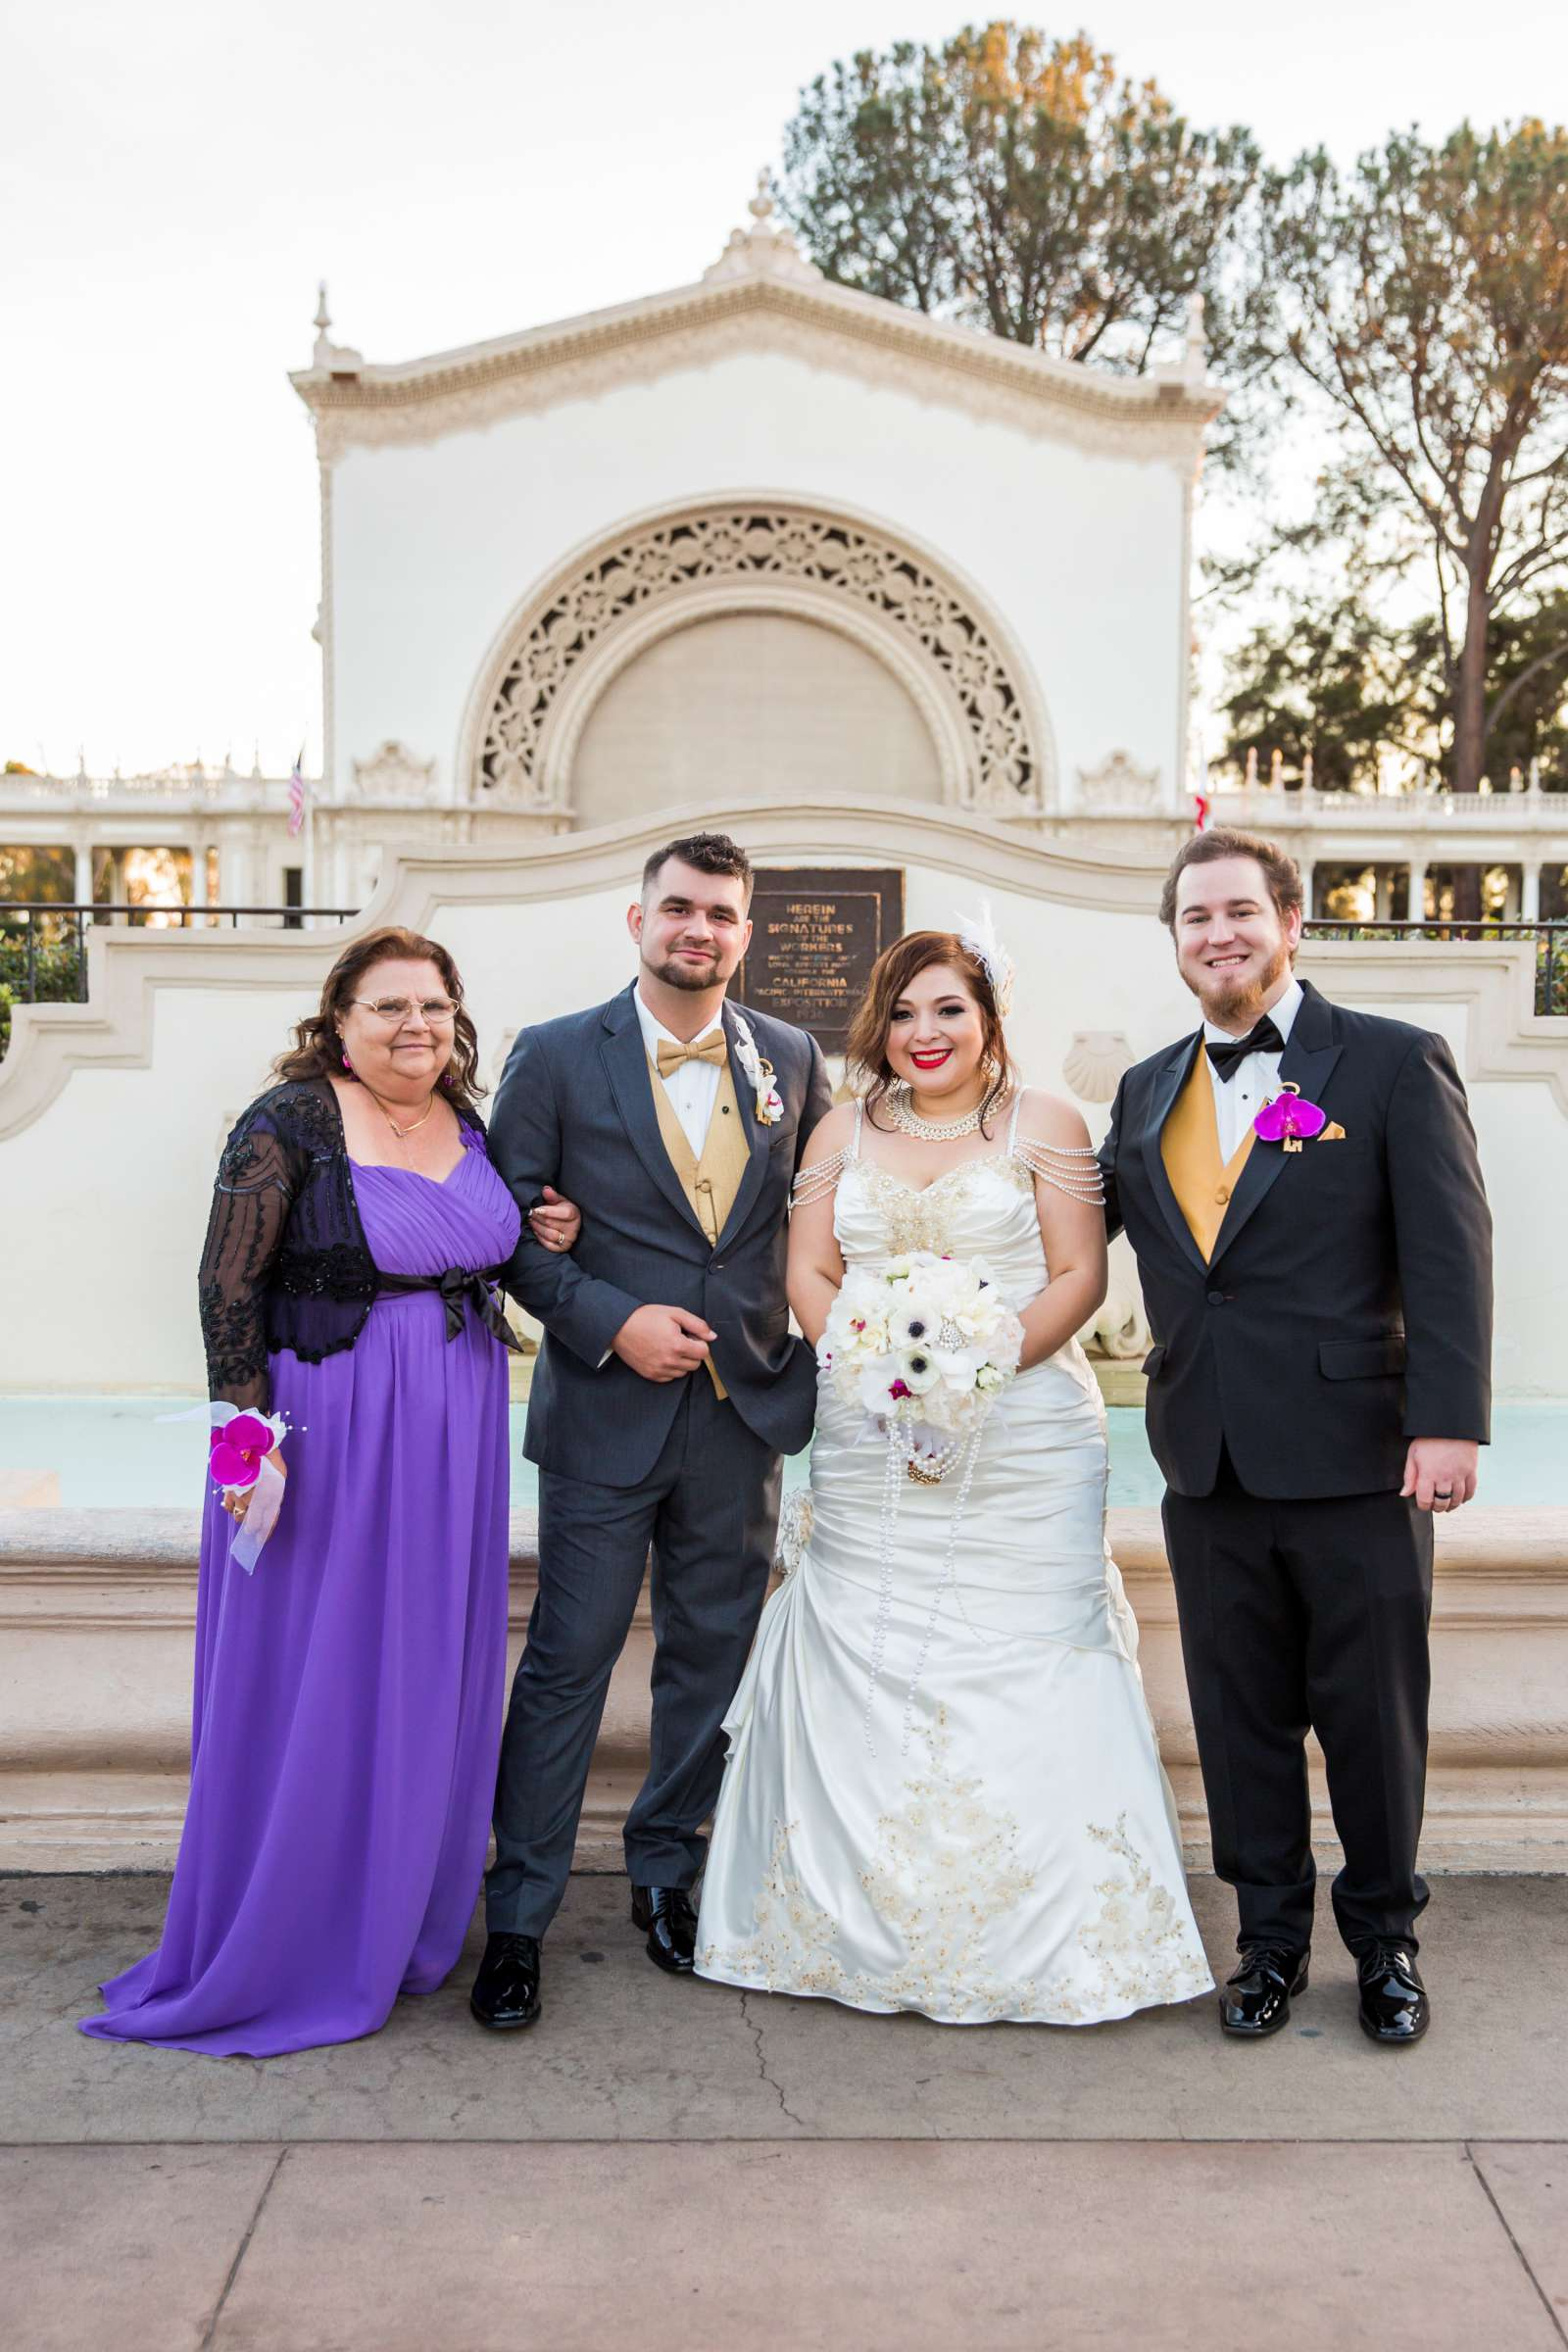 The Prado Wedding coordinated by Breezy Day Weddings, Aalis and Michael Wedding Photo #83 by True Photography